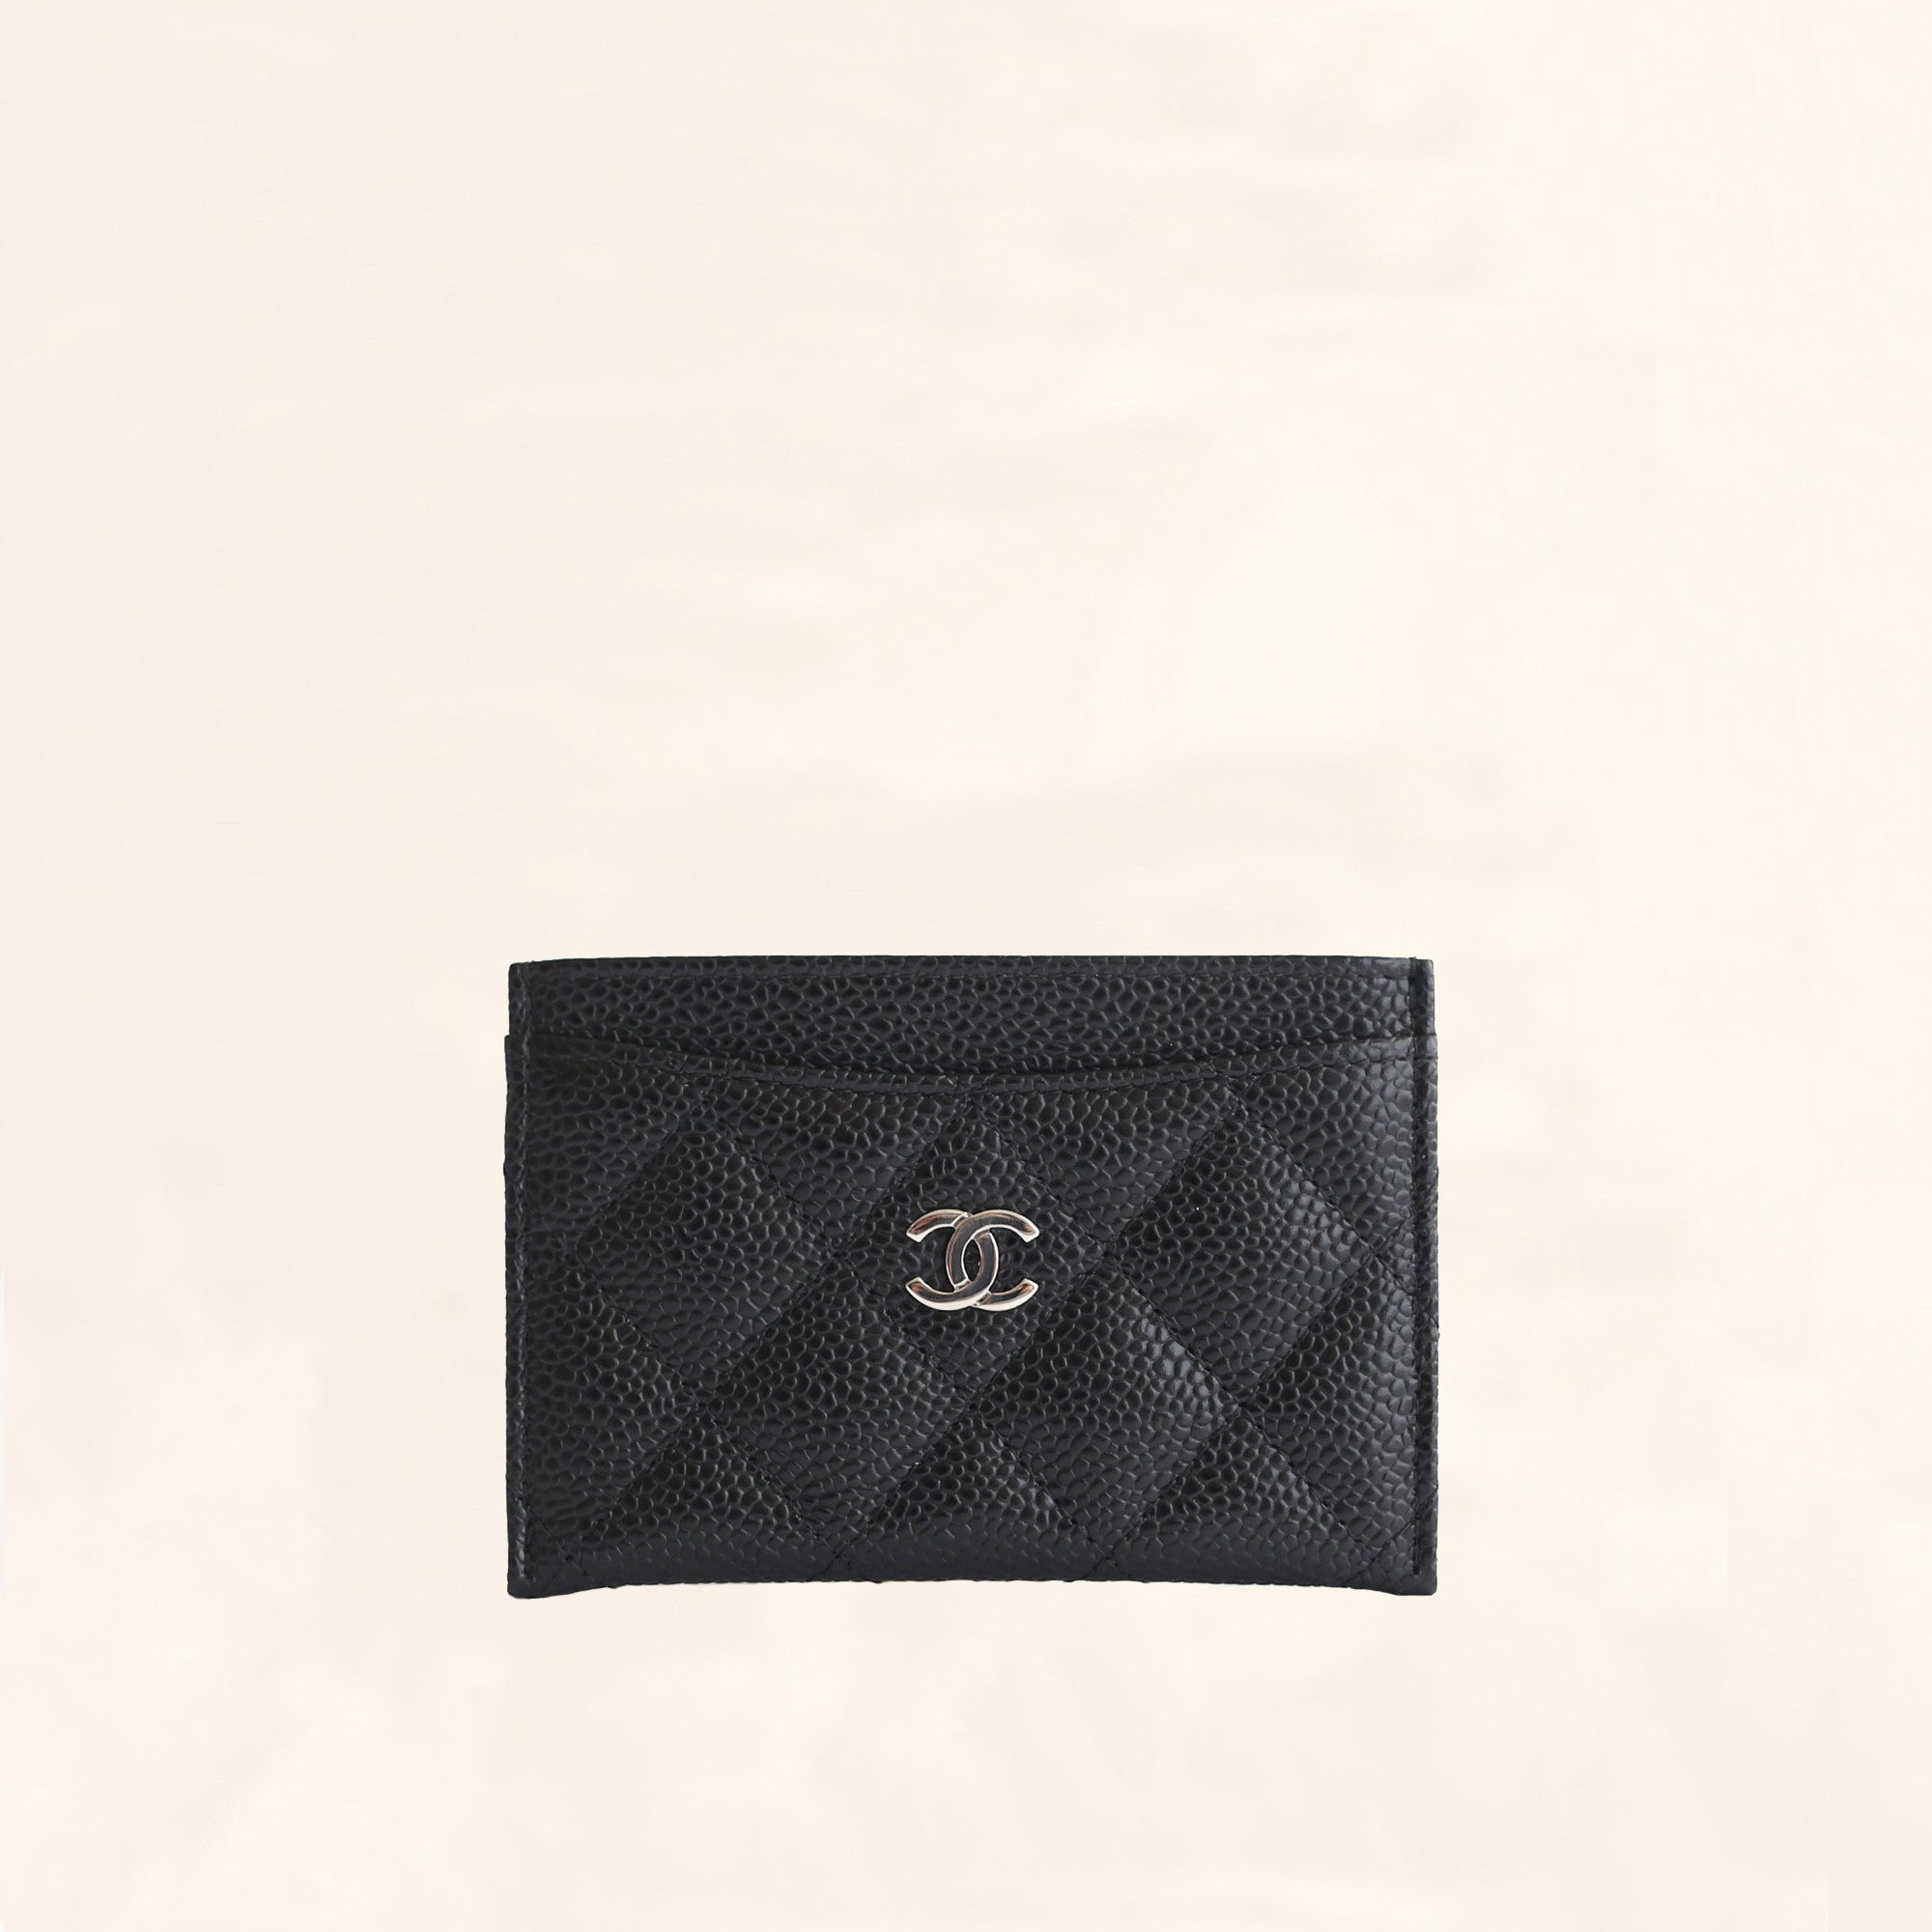 77c2dd7d39cc Chanel | Caviar Card Holder with SHW | One Size - The-Collectory